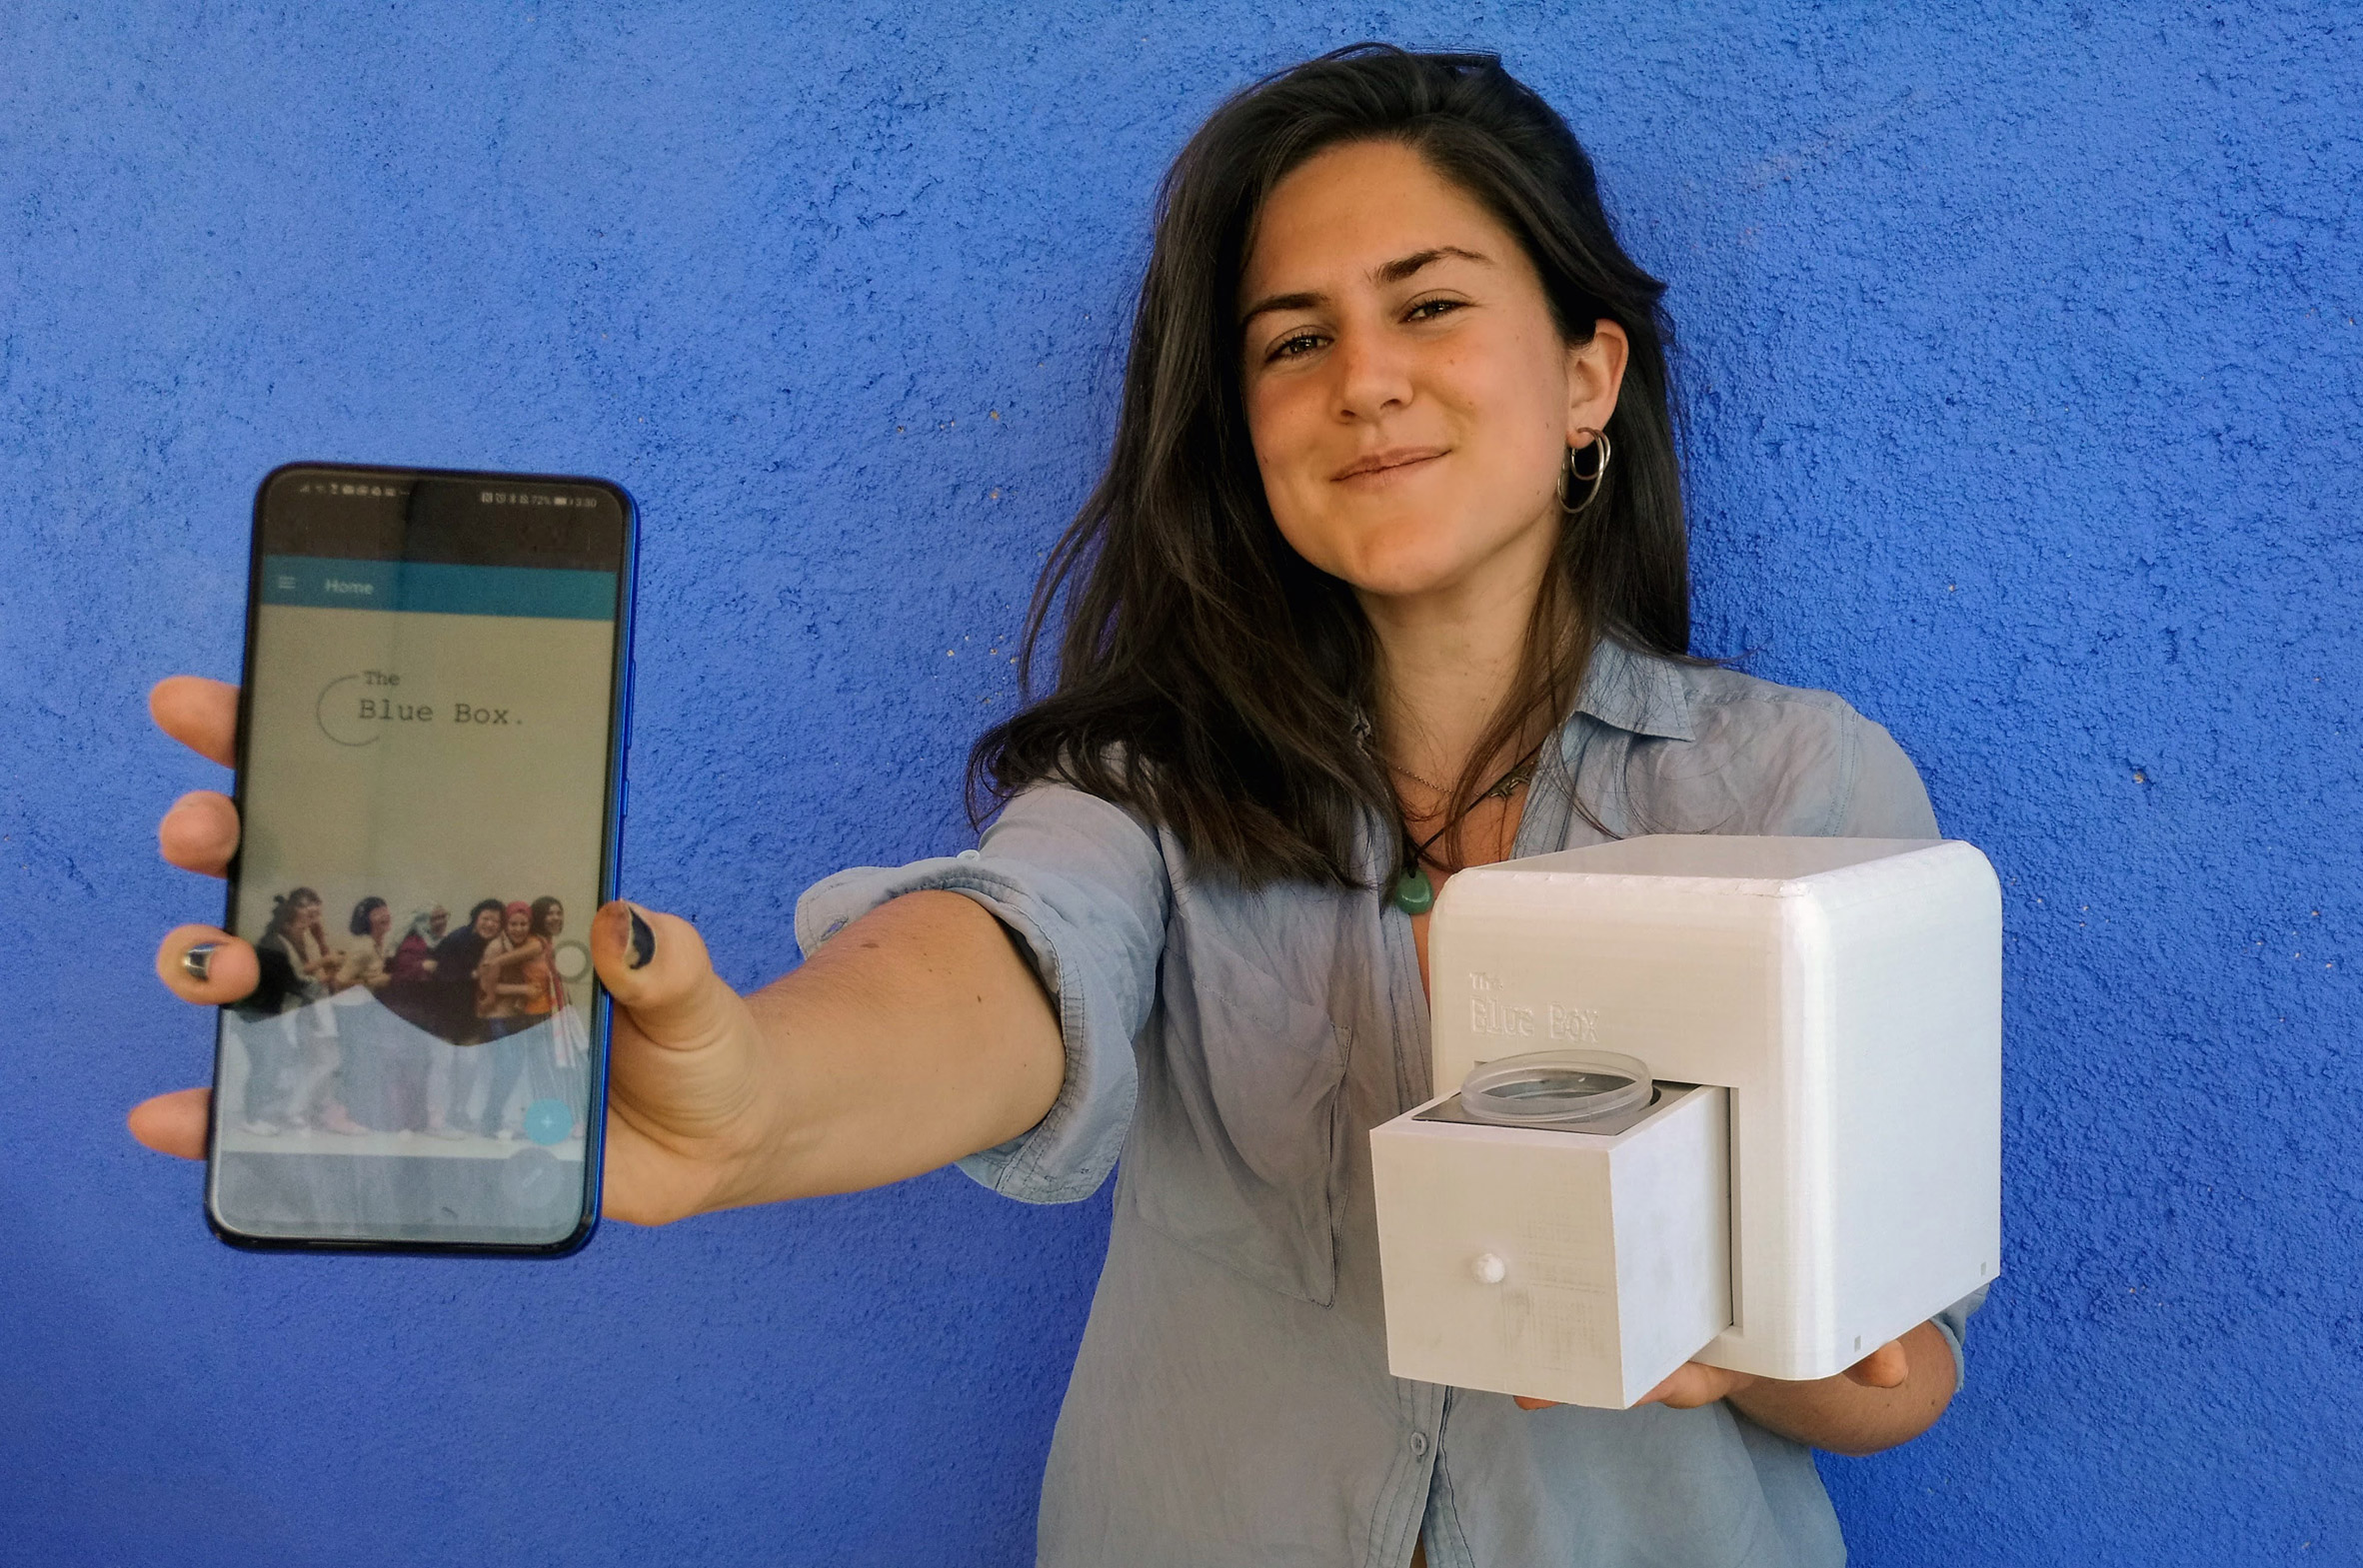 Judit Giró Benet holding The Blue Box, an at-home breast cancer testing kit